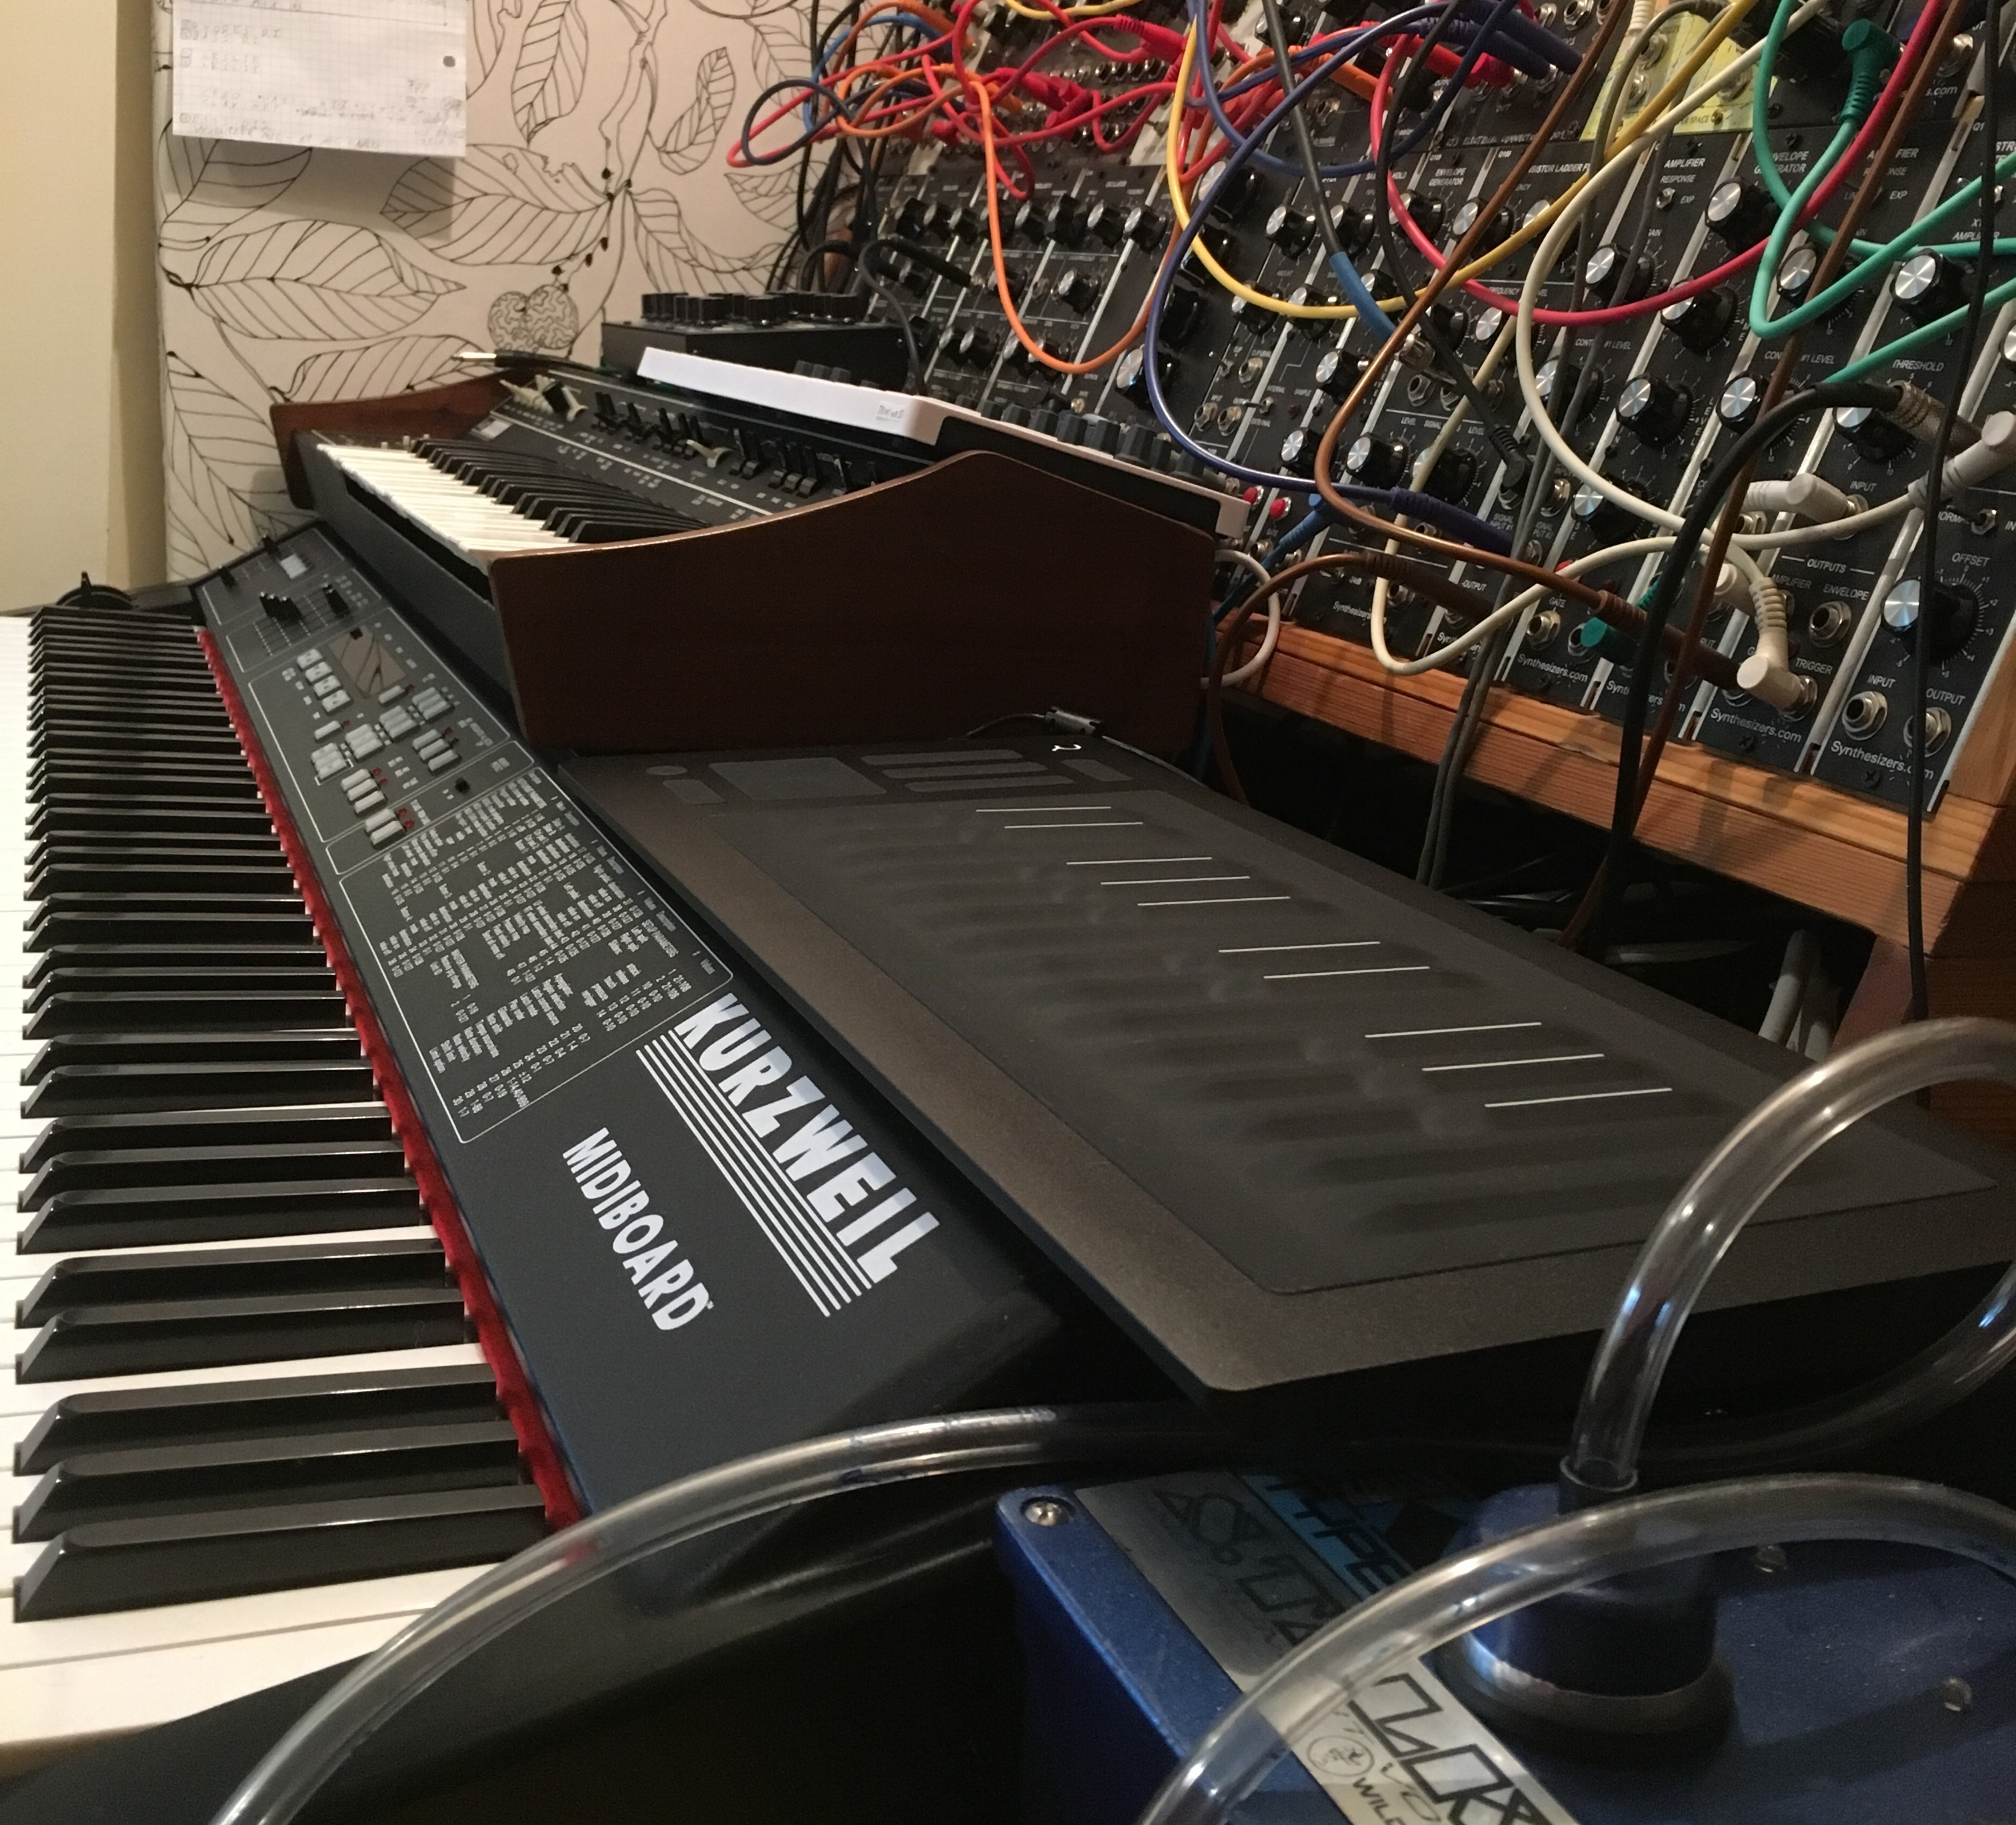 RJD2 studio with RISE 25